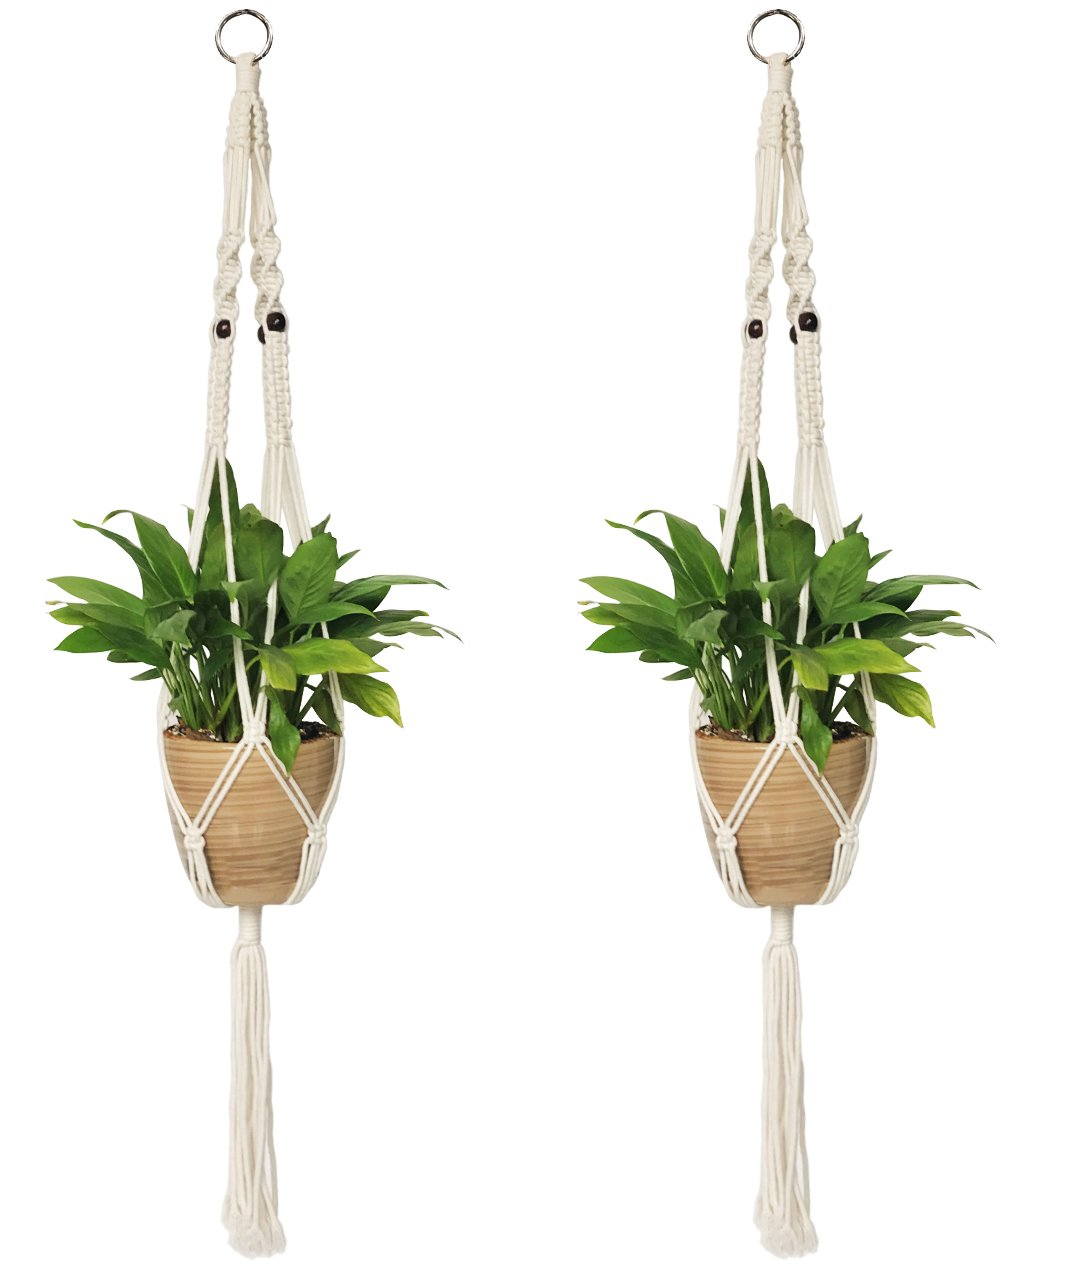 2PCS Macrame Plant Hanger Indoor Outdoor Hanging Planter Basket Cotton Rope 4 Legs 39 inch YHmall